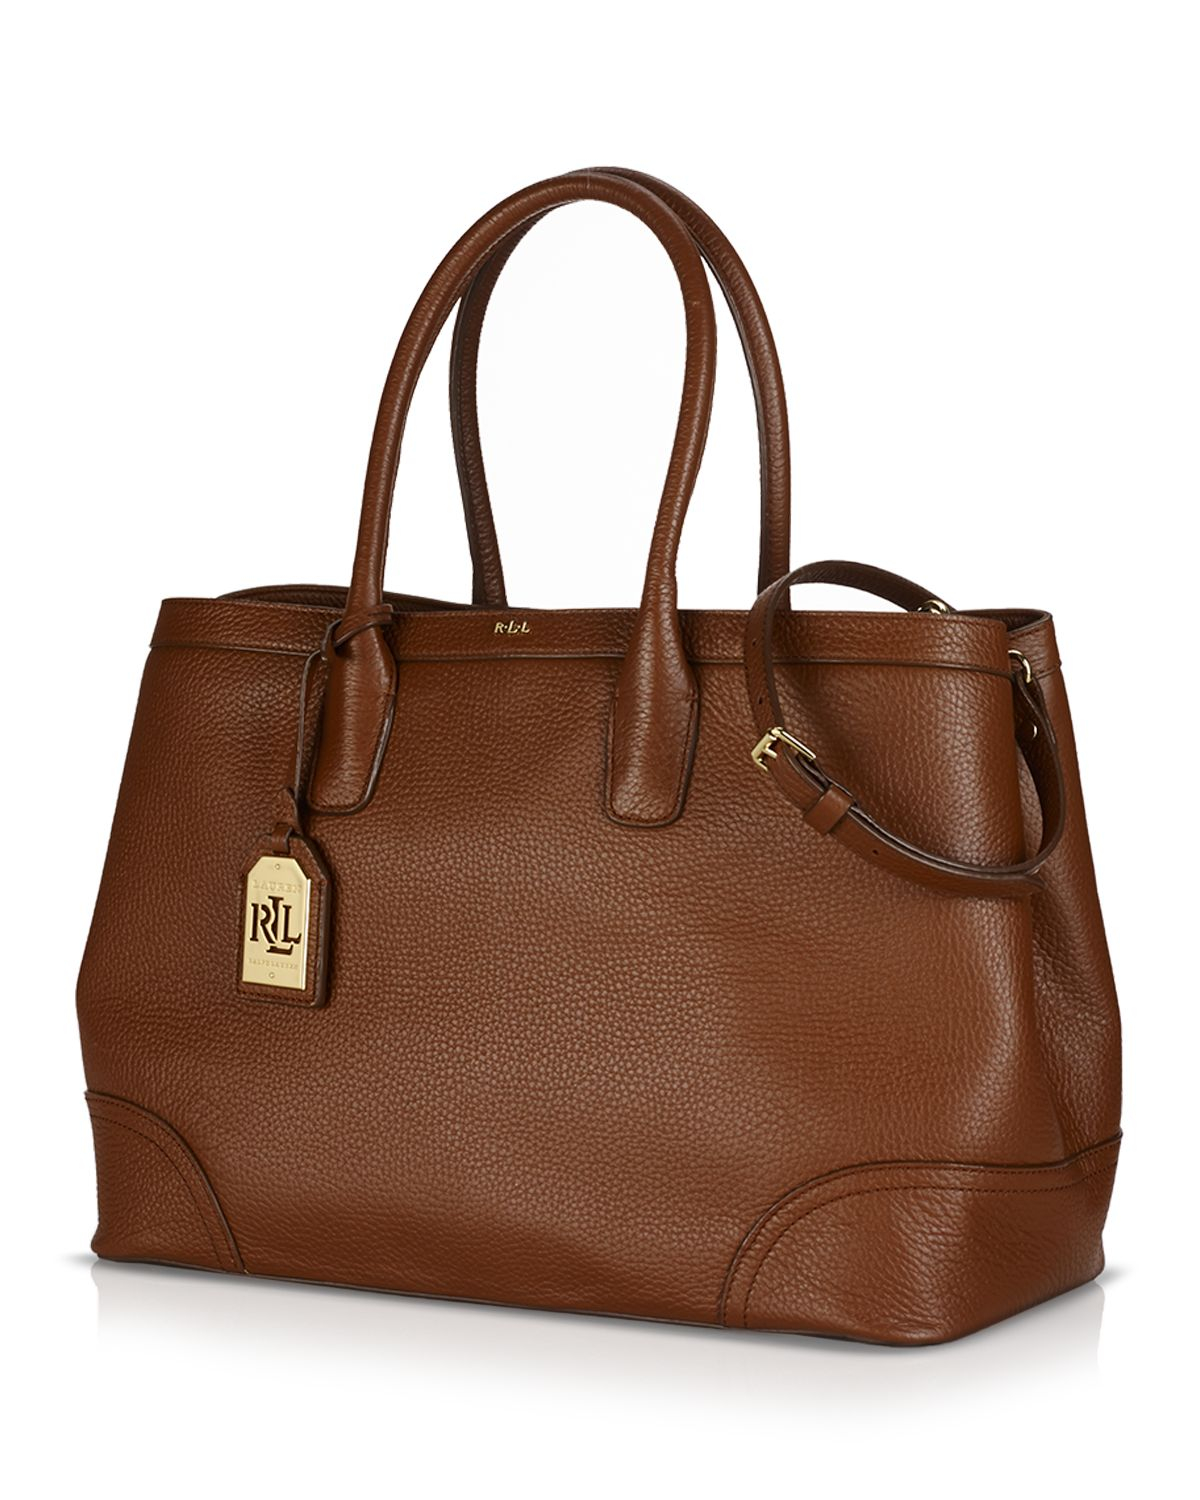 Ralph Lauren Tote Laukku : Lauren by ralph tote fairfield city in brown lyst